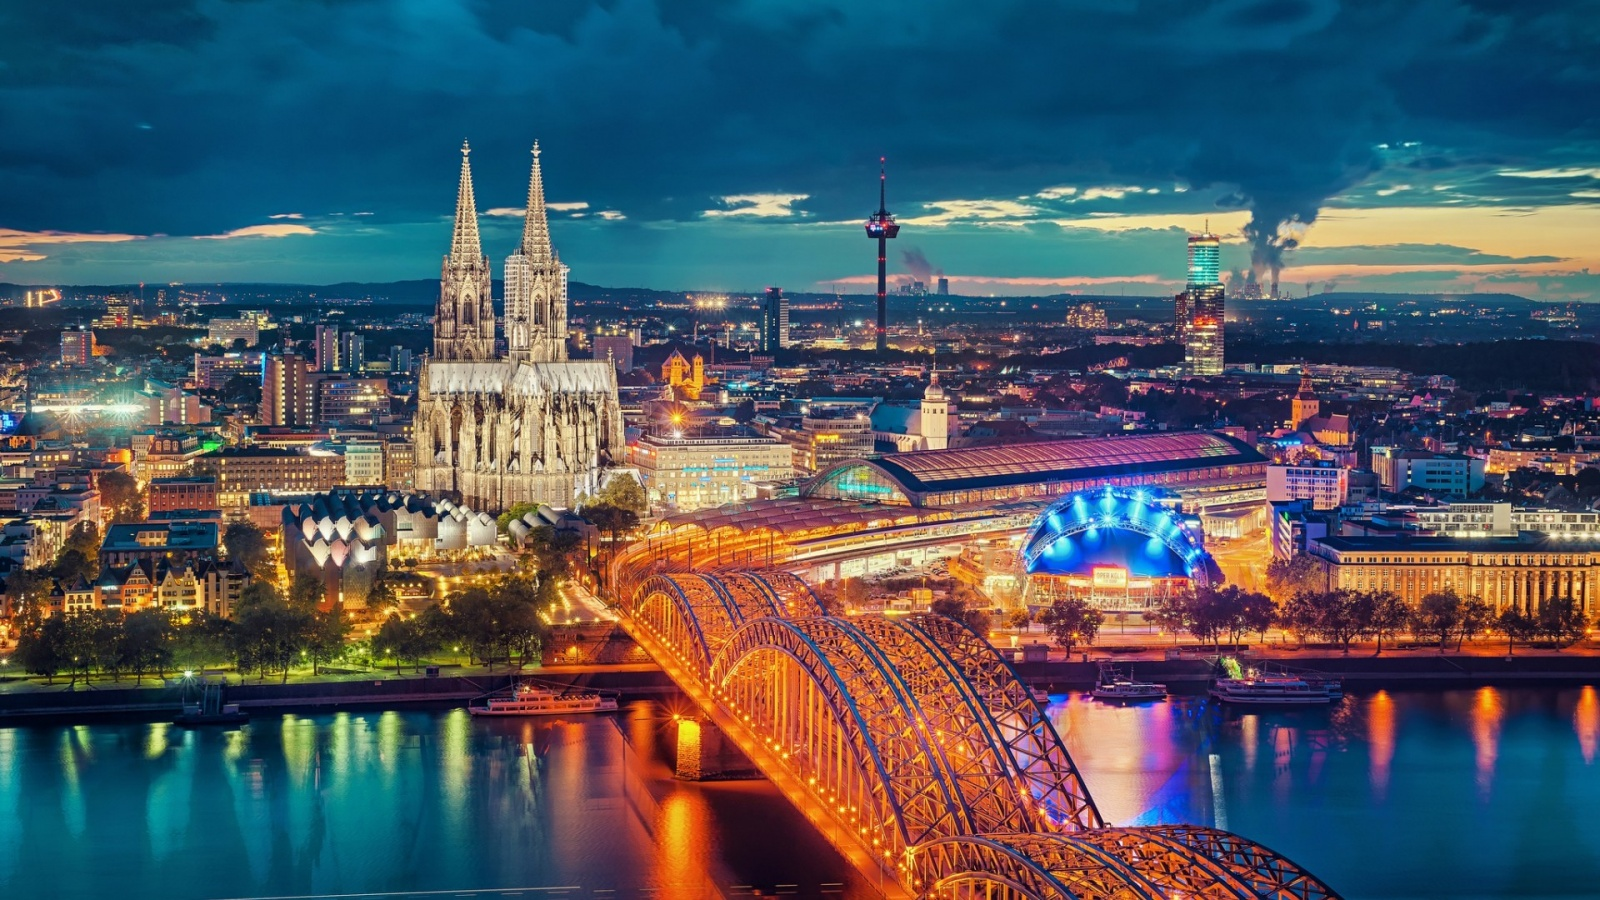 cologne-germany-hd-1600x900